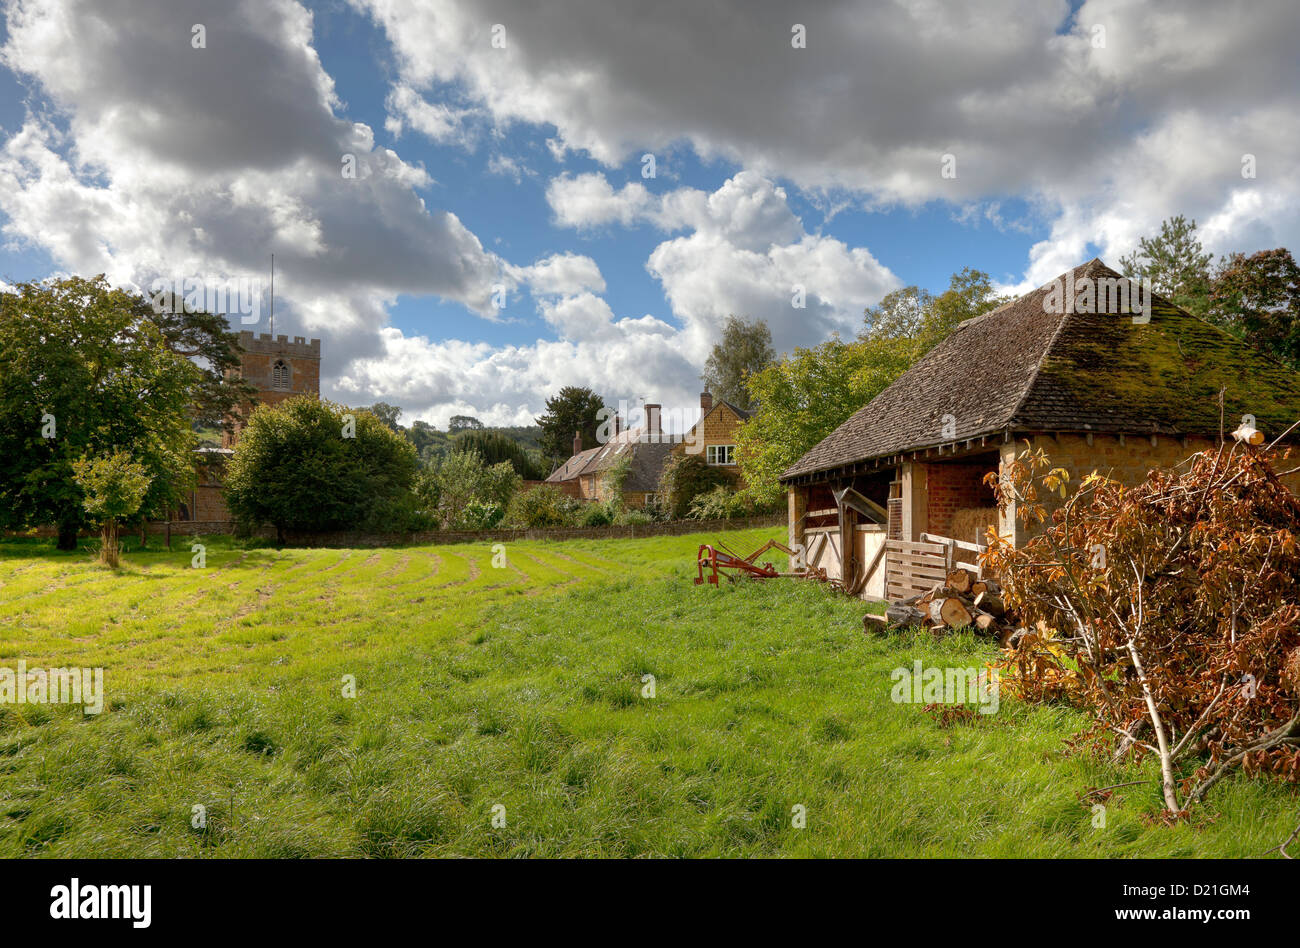 English village scene with church, cottages and barn - Stock Image